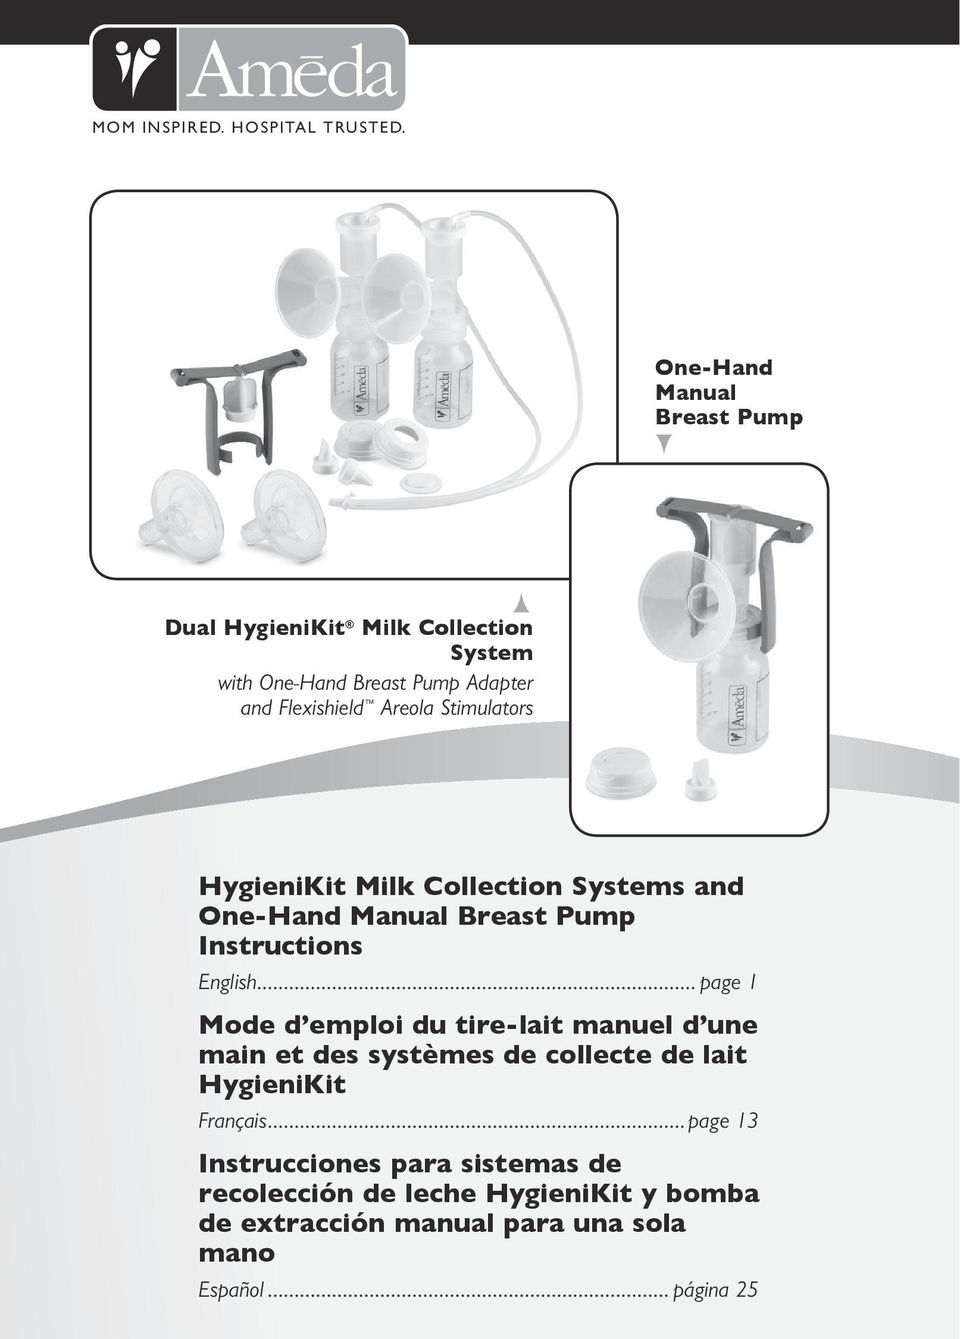 Stimulators HygieniKit Milk Collection Systems and One-Hand Manual Breast Pump Instructions English.